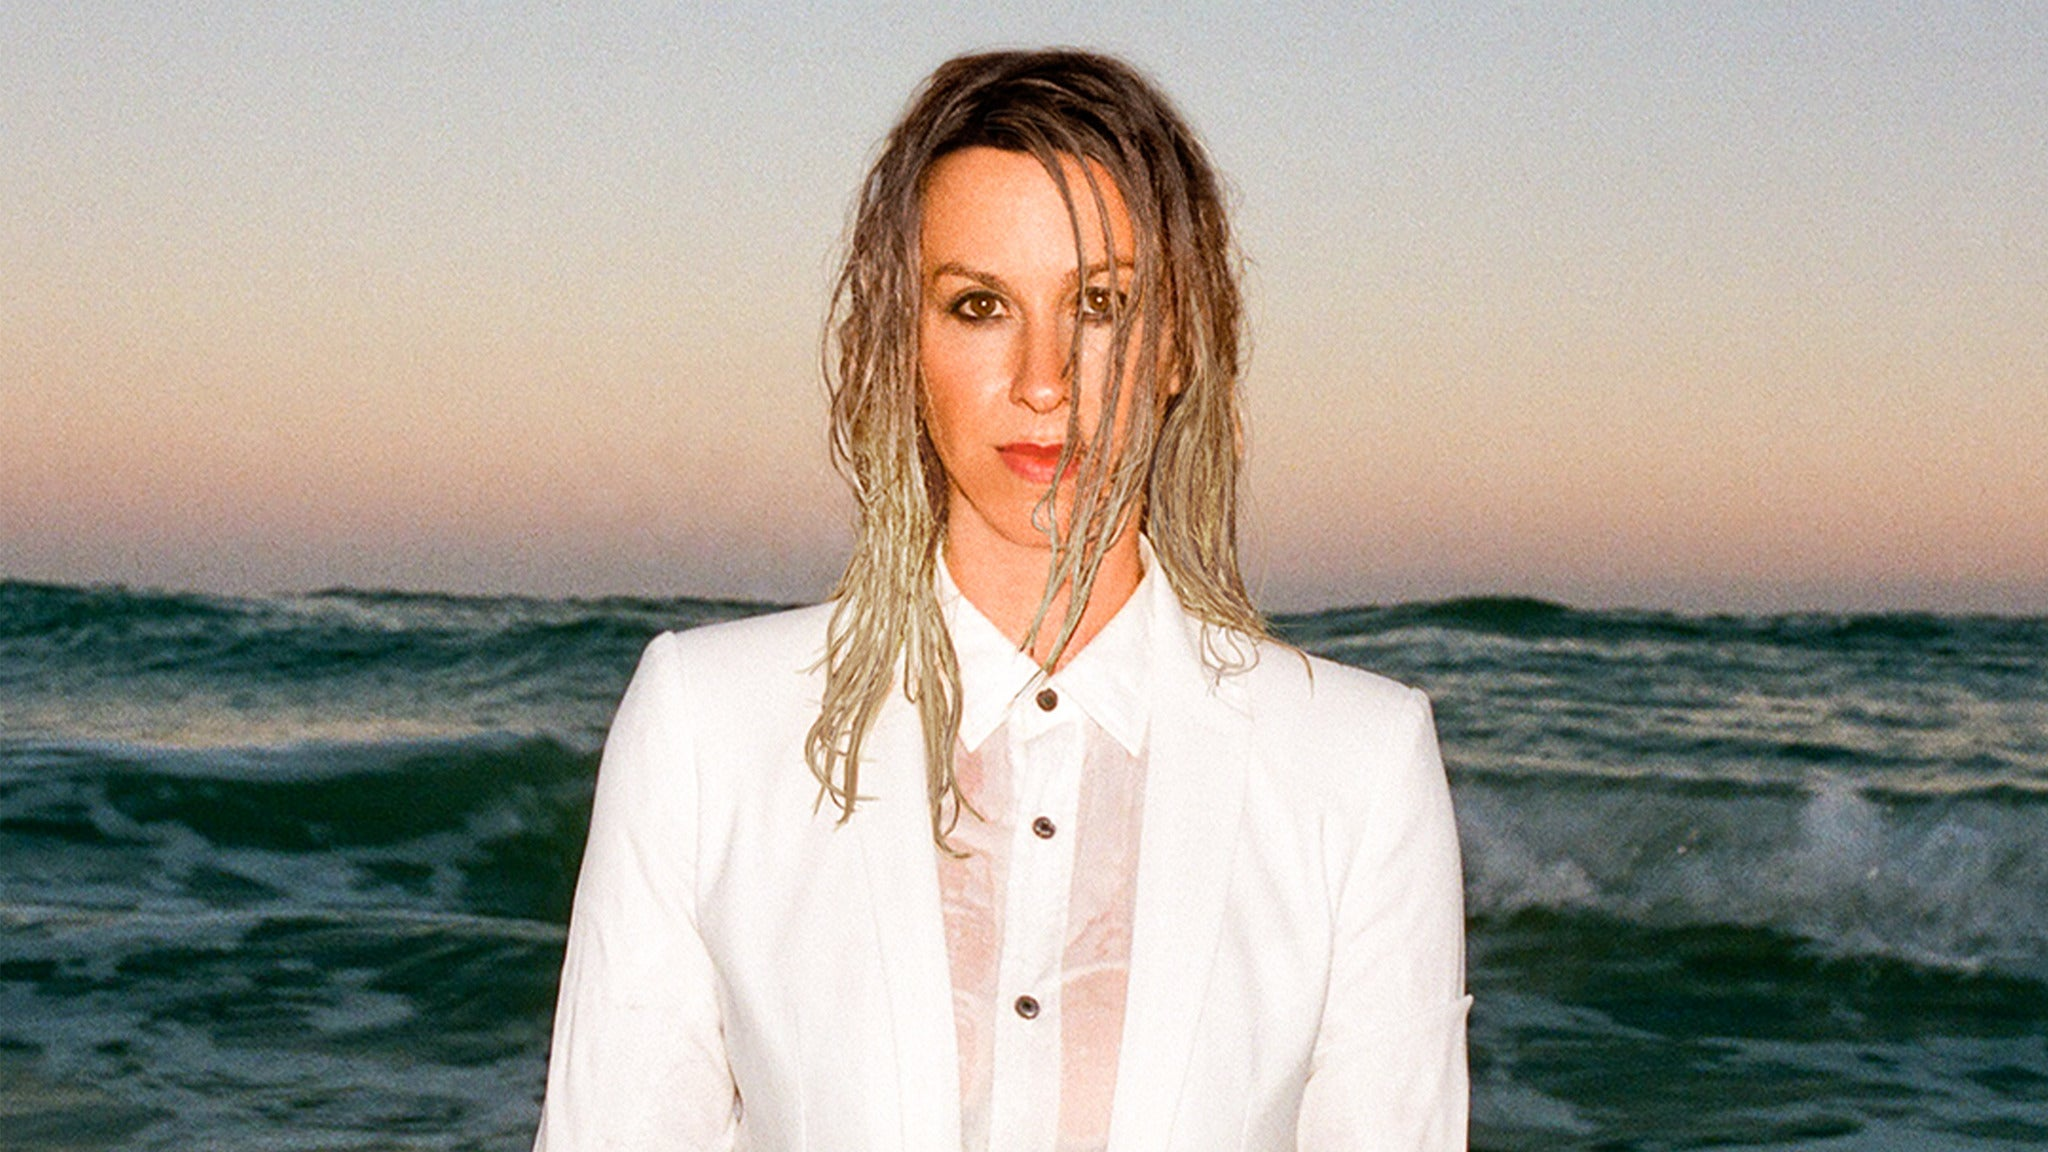 Alanis Morissette w/special guest Garbage & also appearing Liz Phair presale password for early tickets in Hollywood